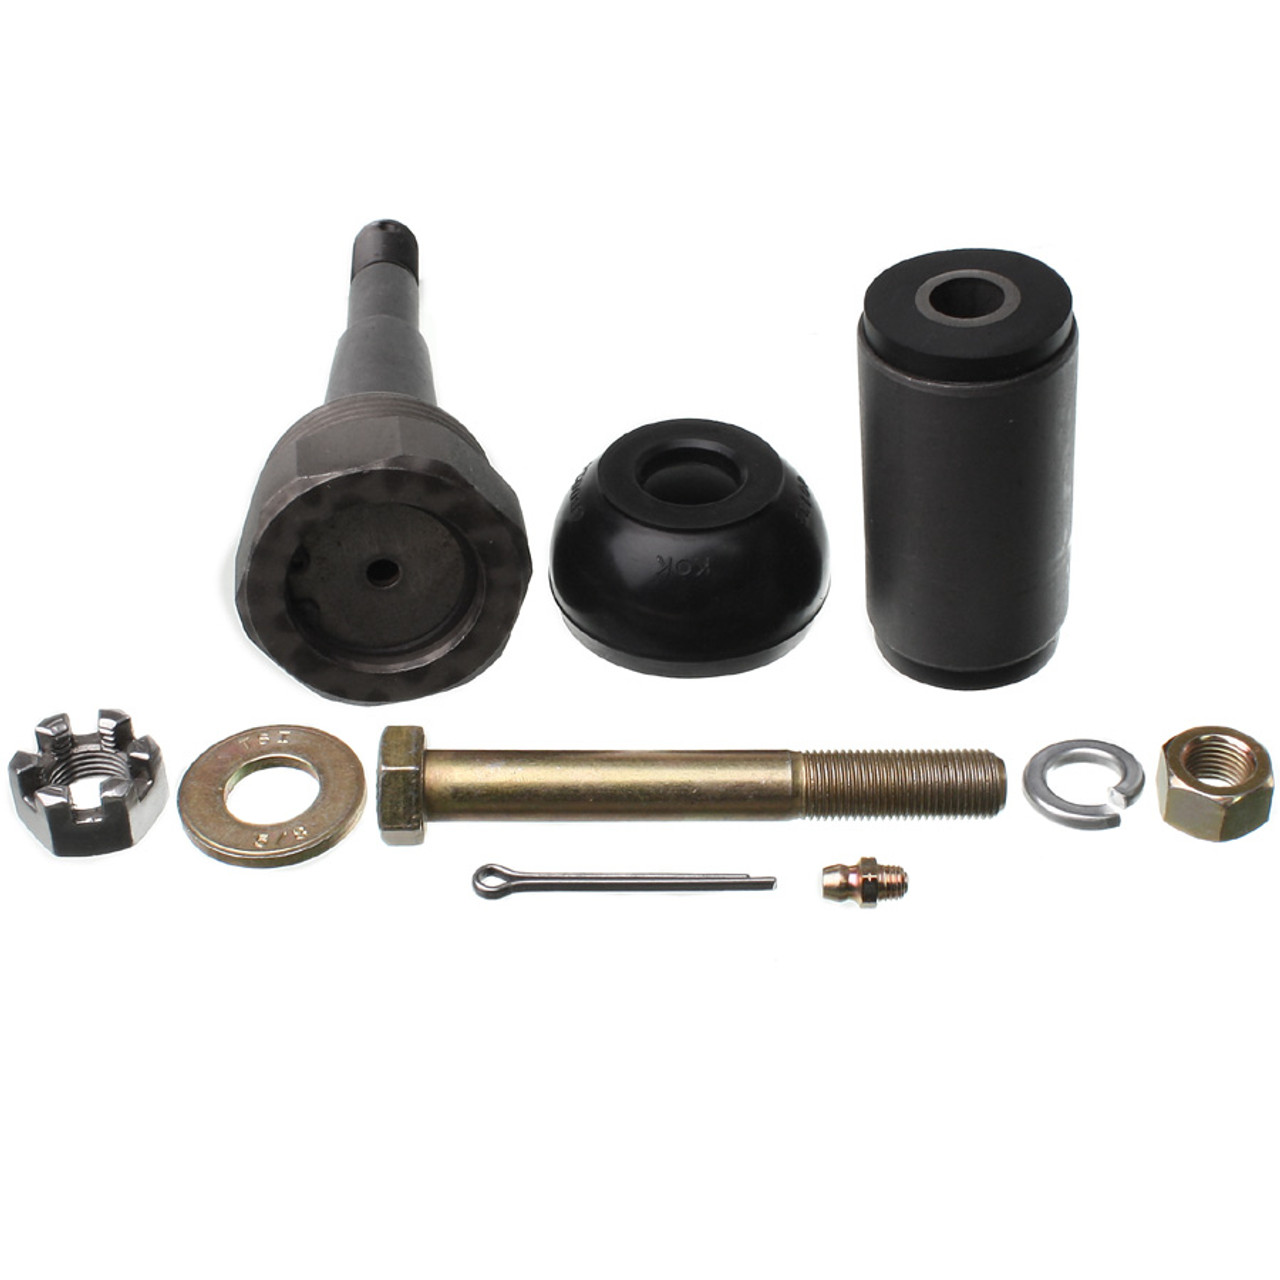 Rare Parts Rear Lower Control Arm Bushing and Joint Kit 1957-1958 Cadillac  Eldorado Brougham w/Air Suspension 19697